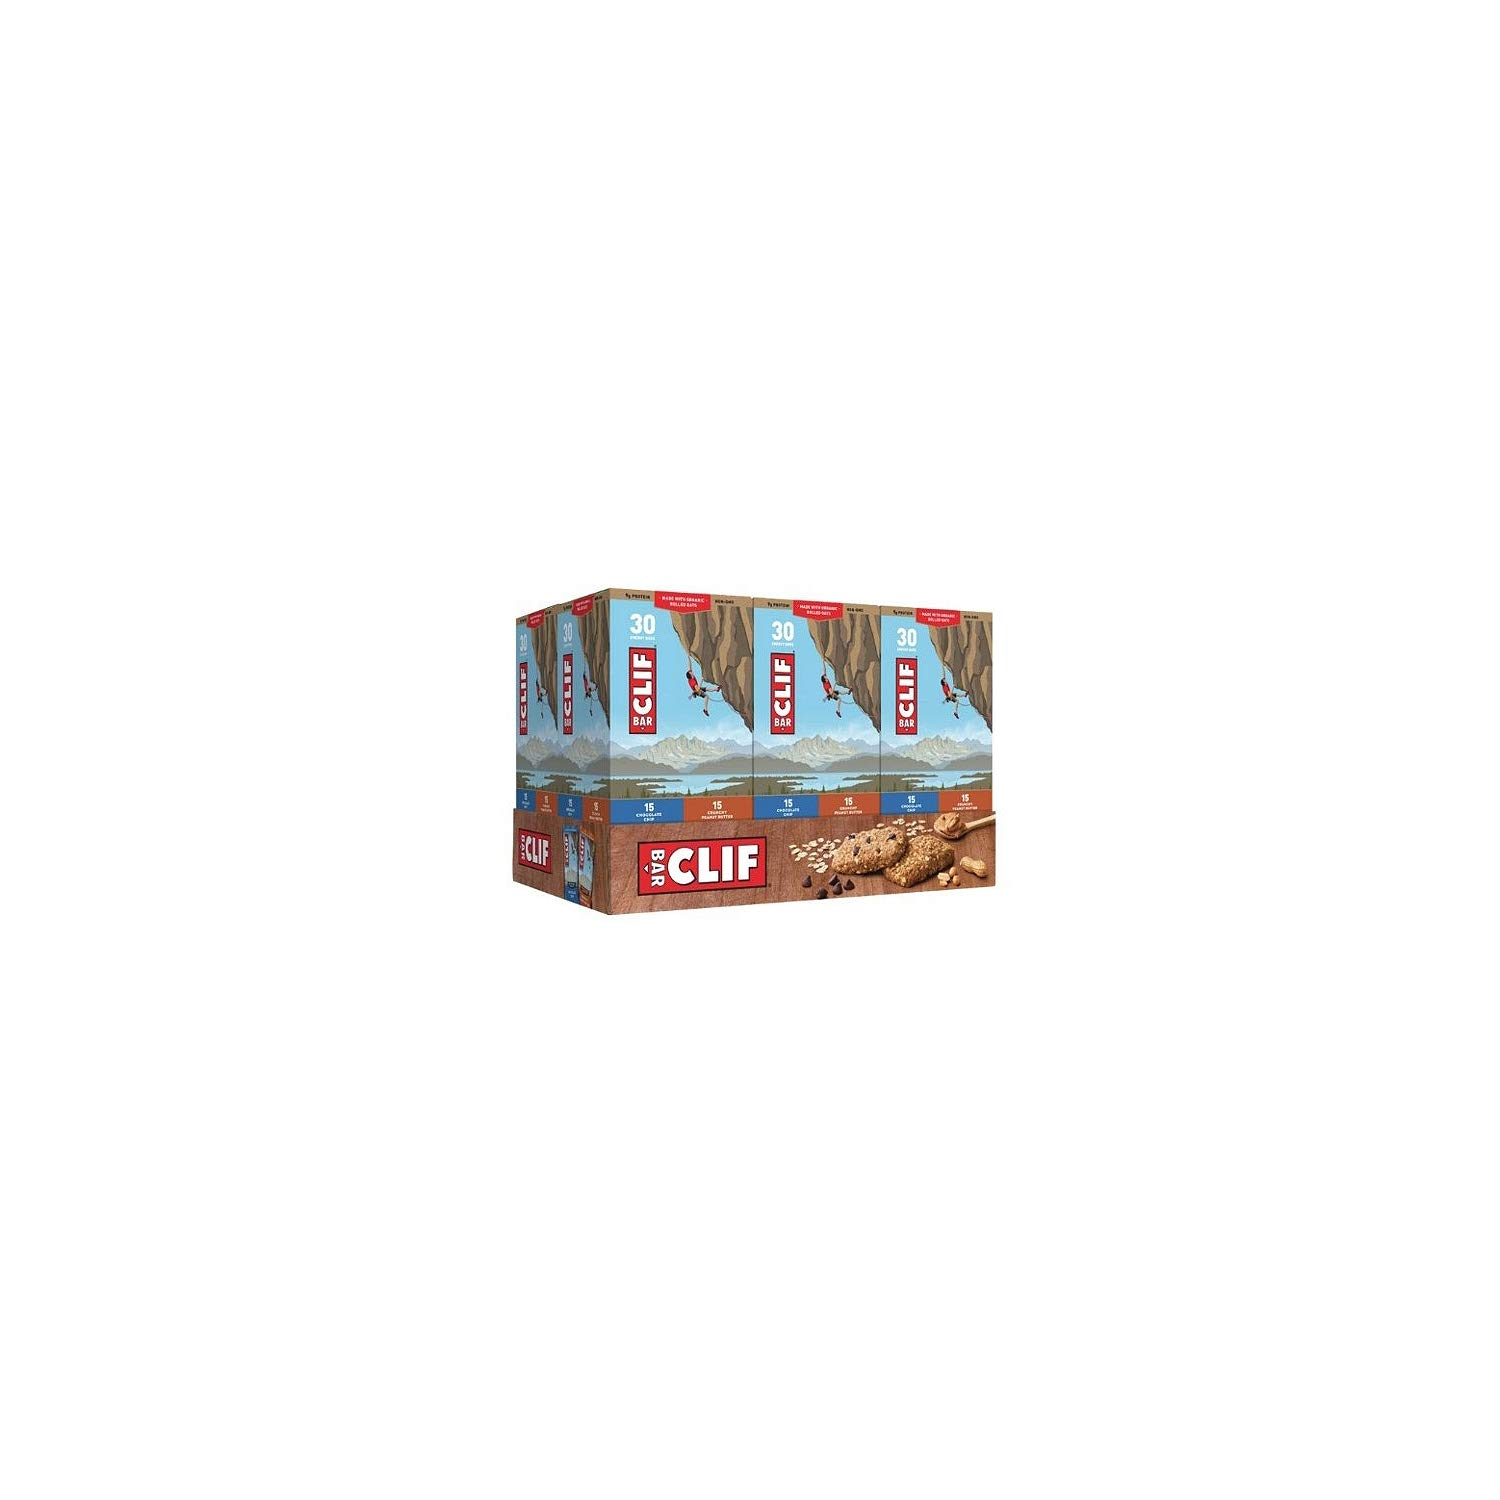 Clif Bar Variety Pack, Chocolate Chip, Crunchy Peanut Butter, 2.4 oz. Nutrition Bars (24 Count)(Pack of 2)